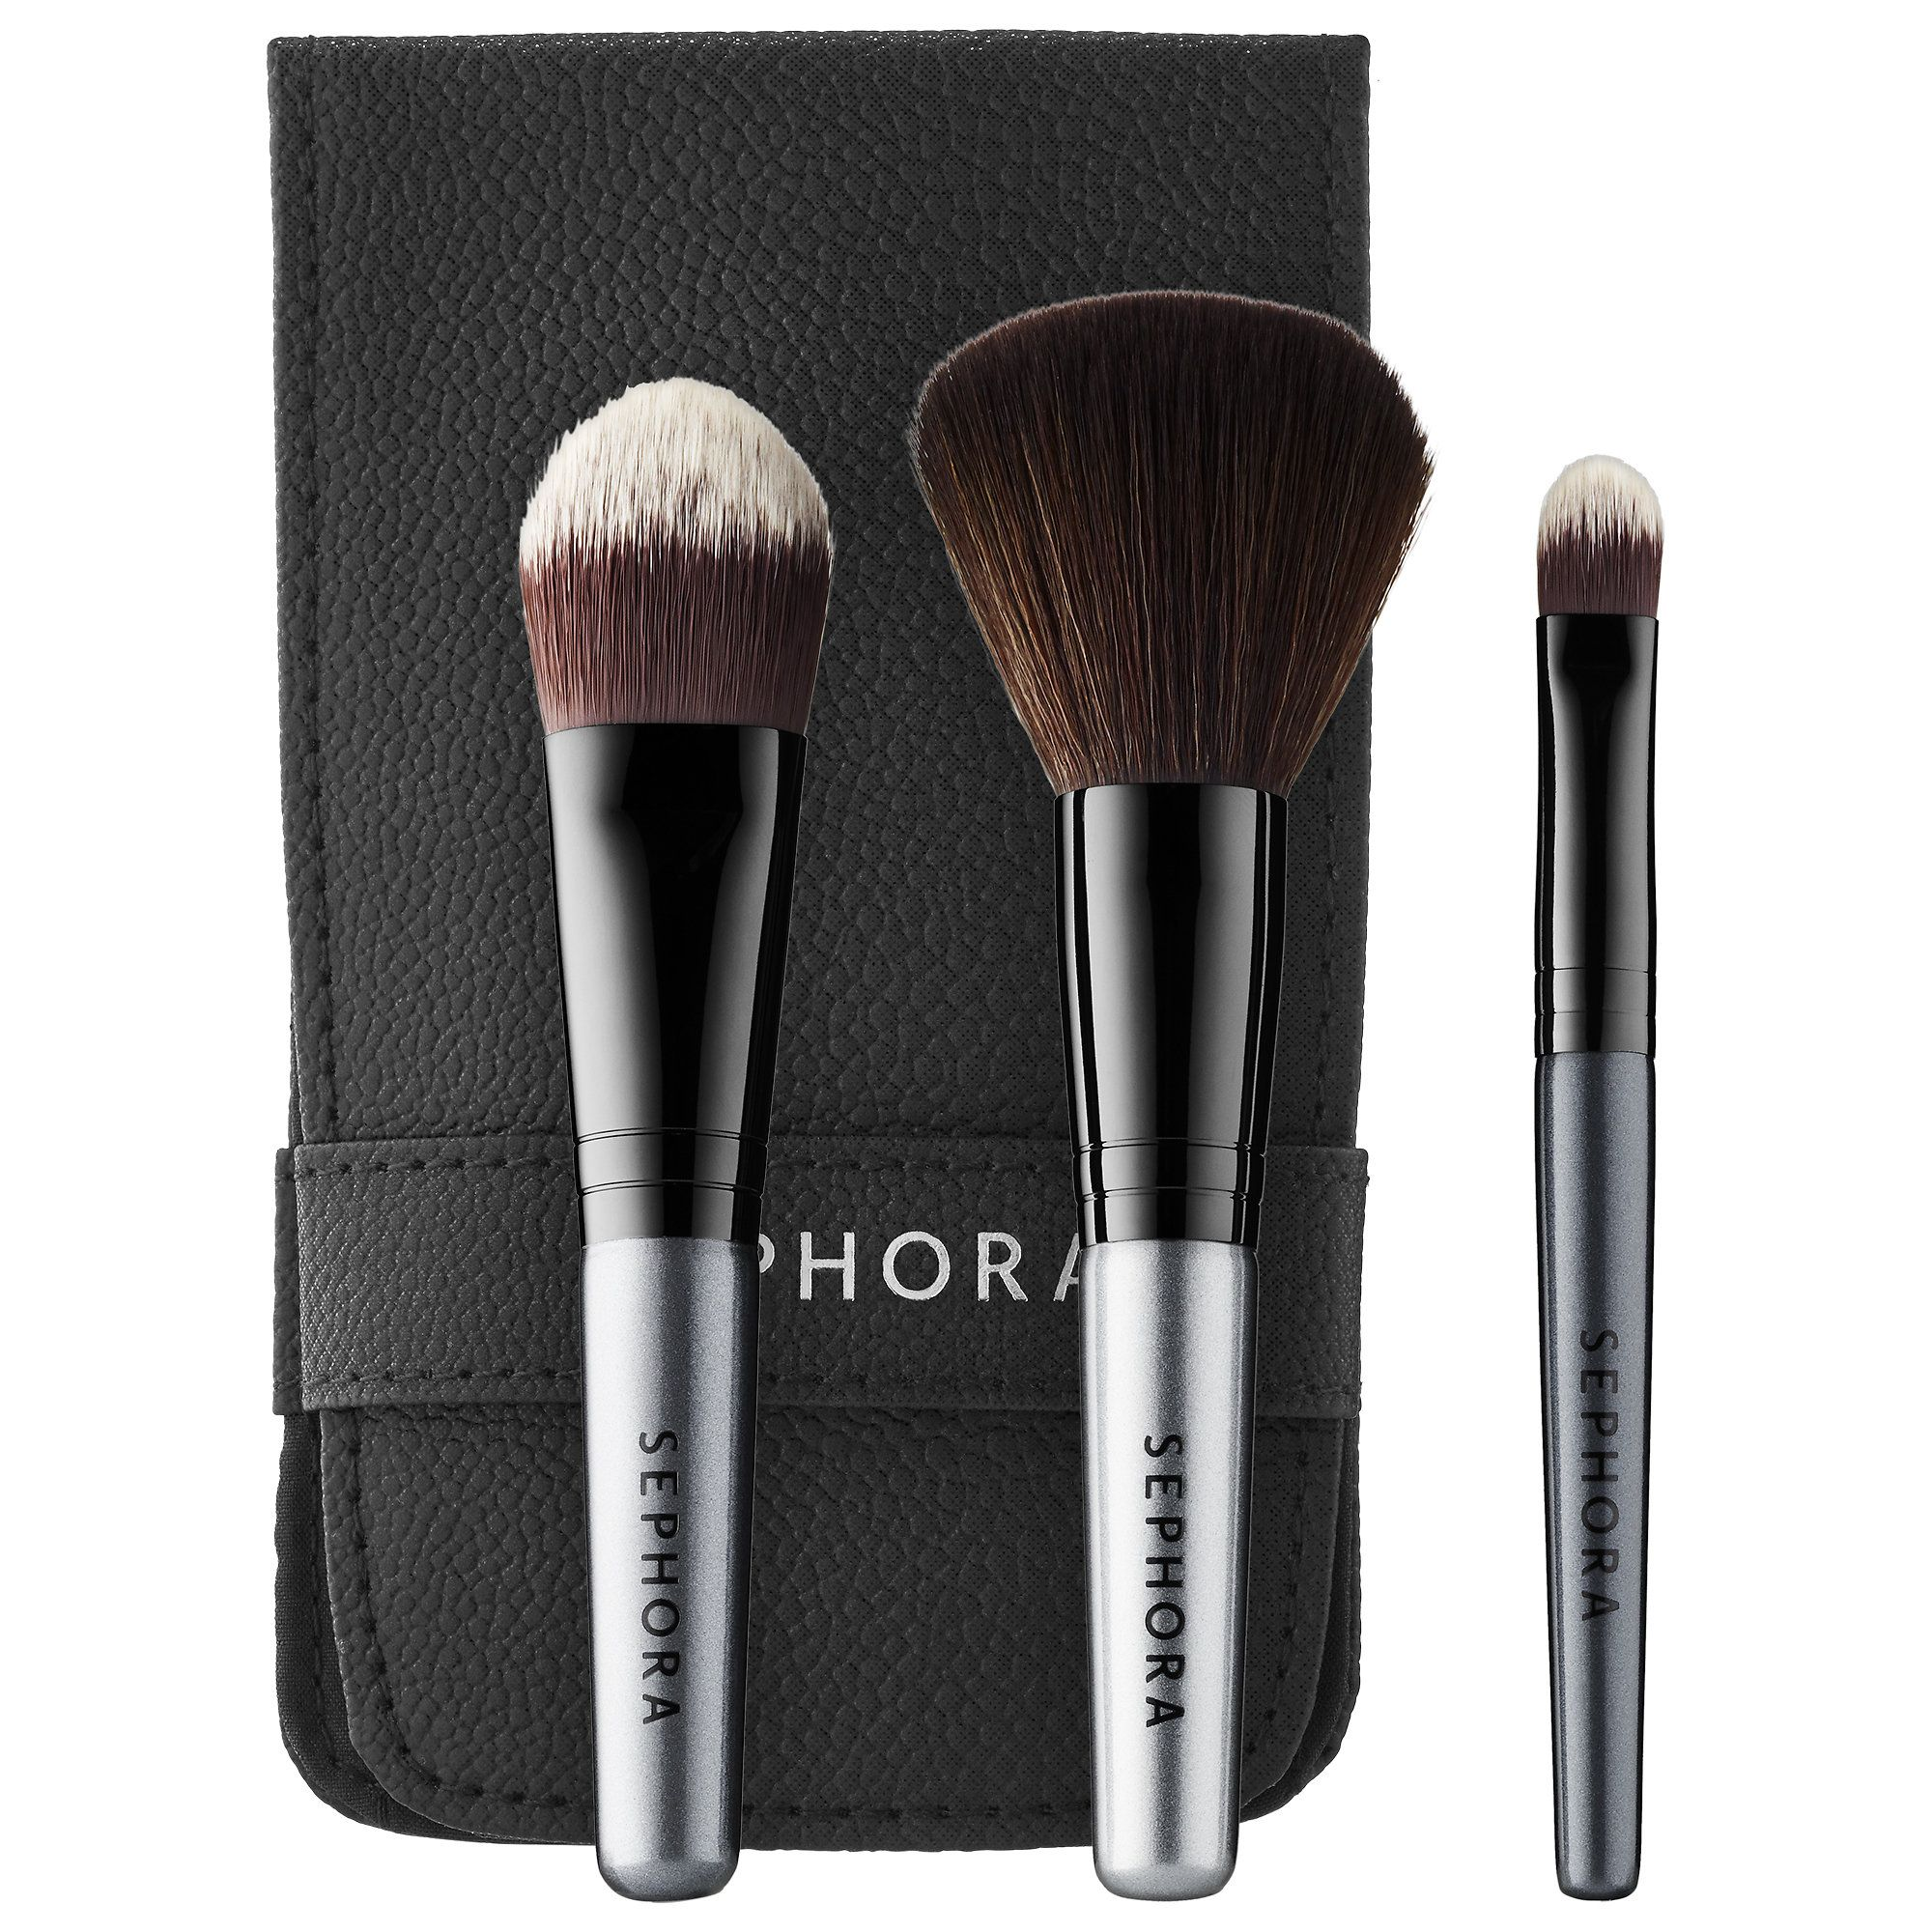 Deluxe Charcoal Antibacterial Brush Set by Sephora Collection #16